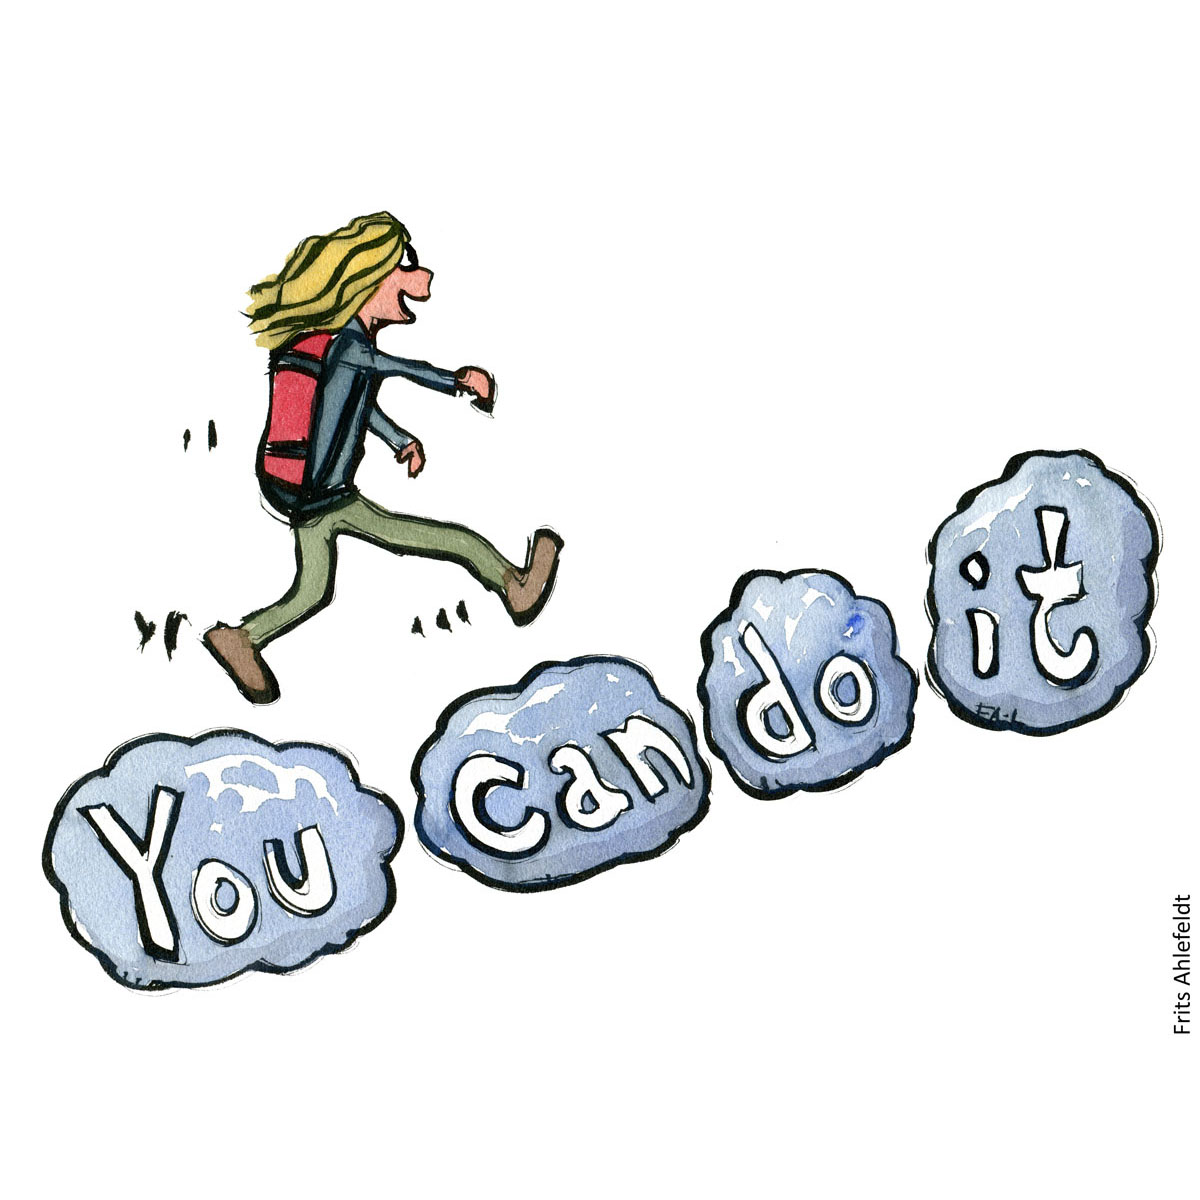 Drawing of a woman hiker walking on clouds with text You can do it. Hiking Illustration handmade by Frits Ahlefeldt